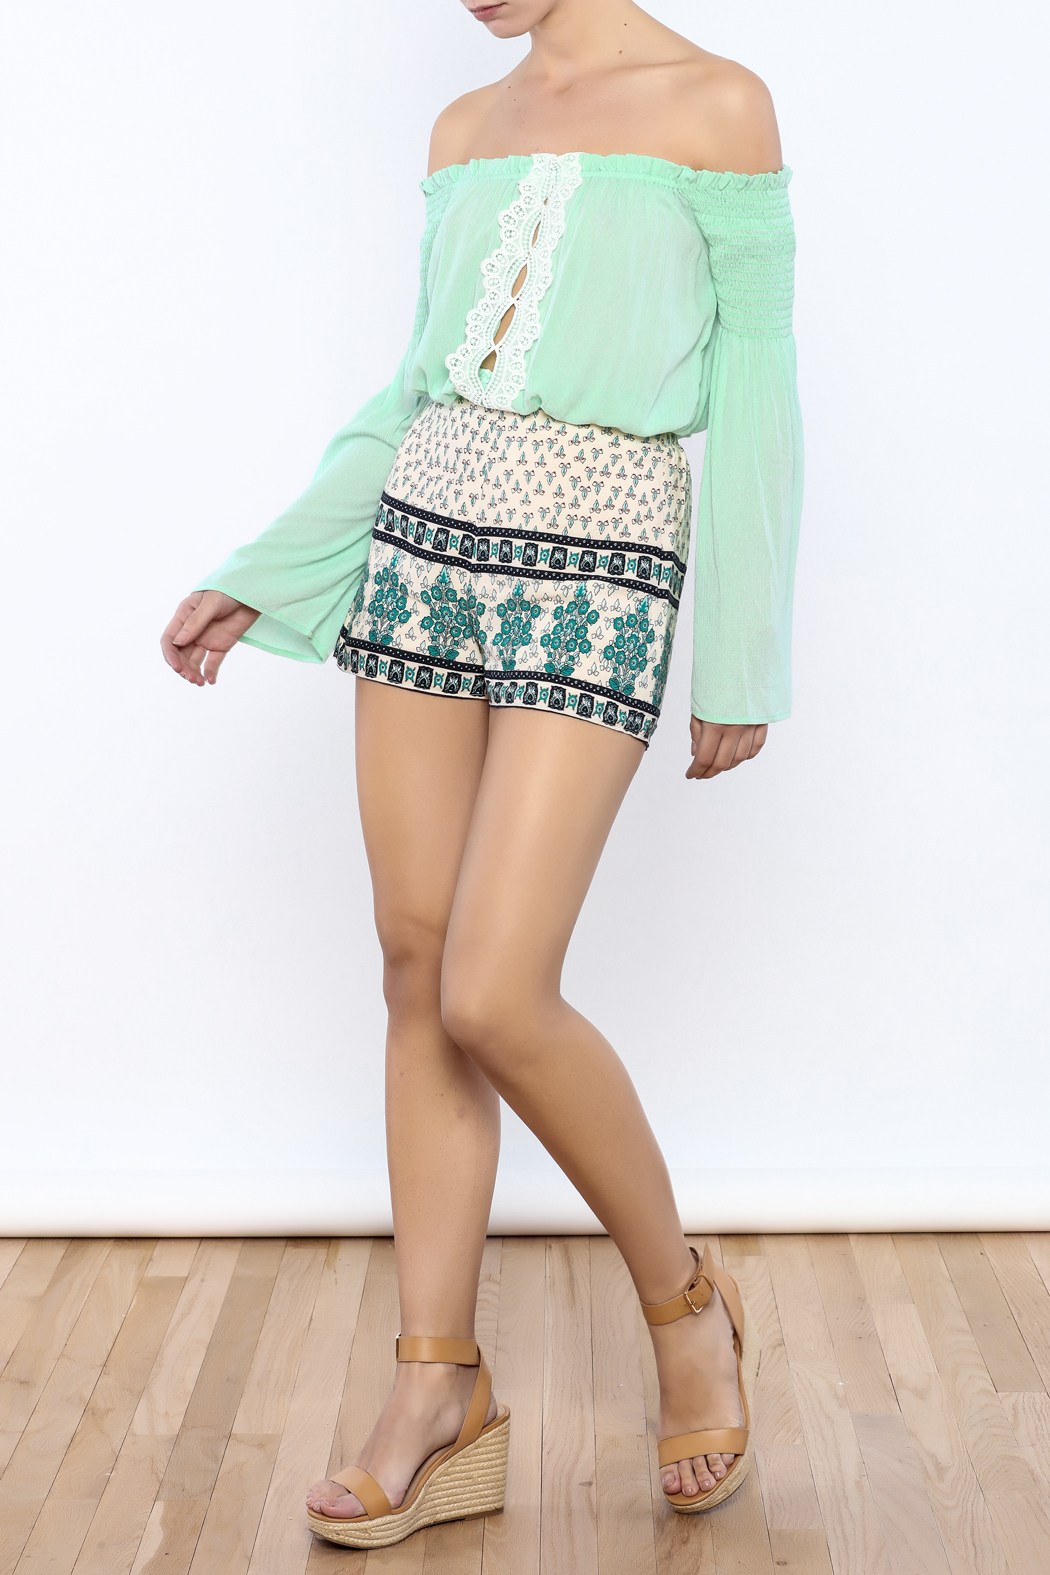 Bacio Beige Printed Shorts - Front Full Image